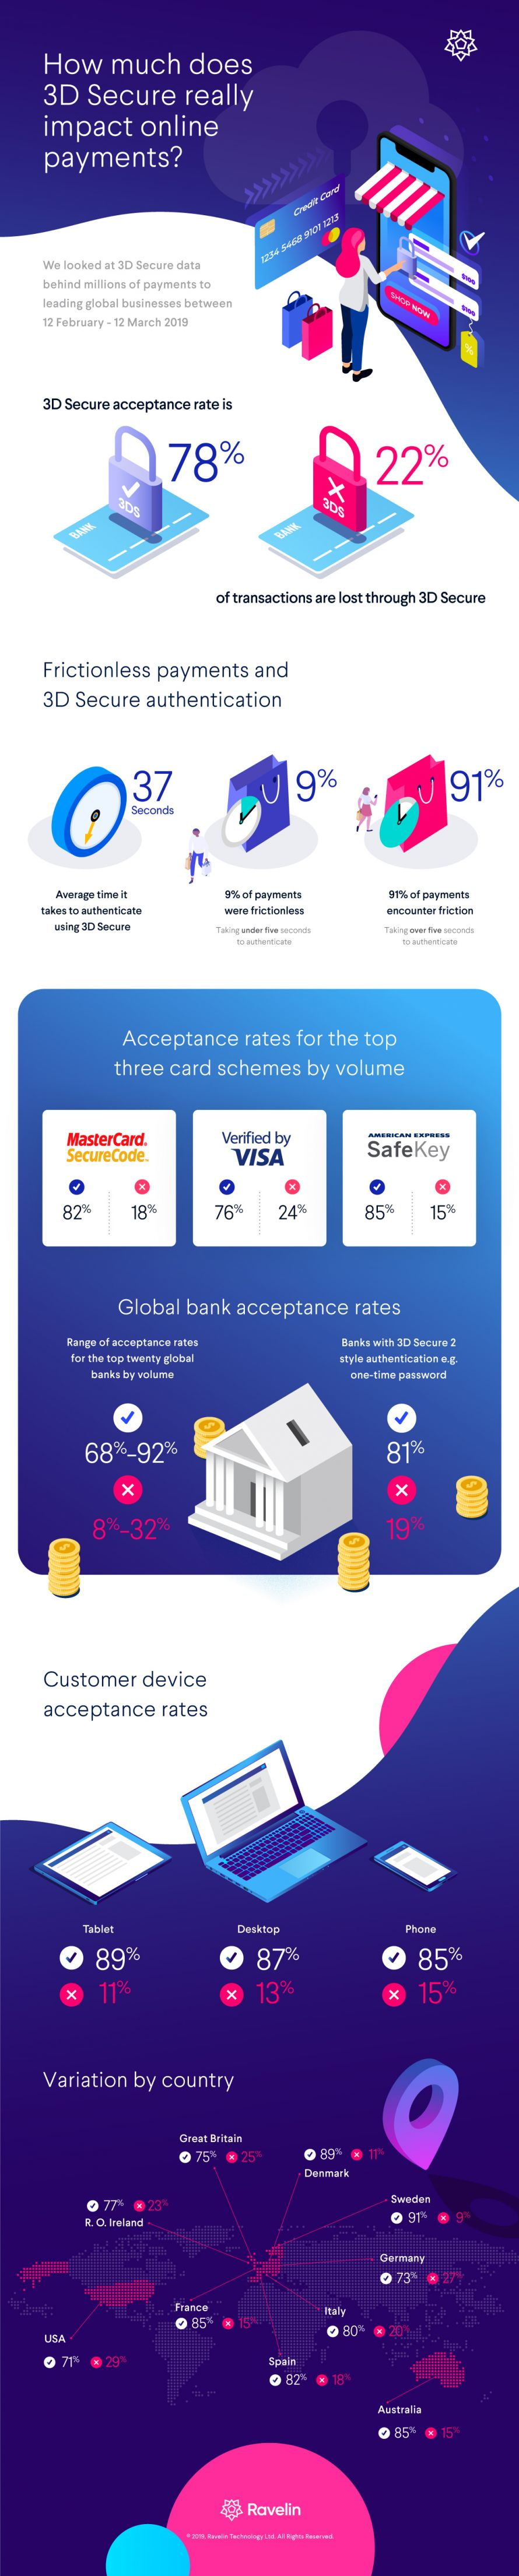 One in five payments lost through 3D Secure